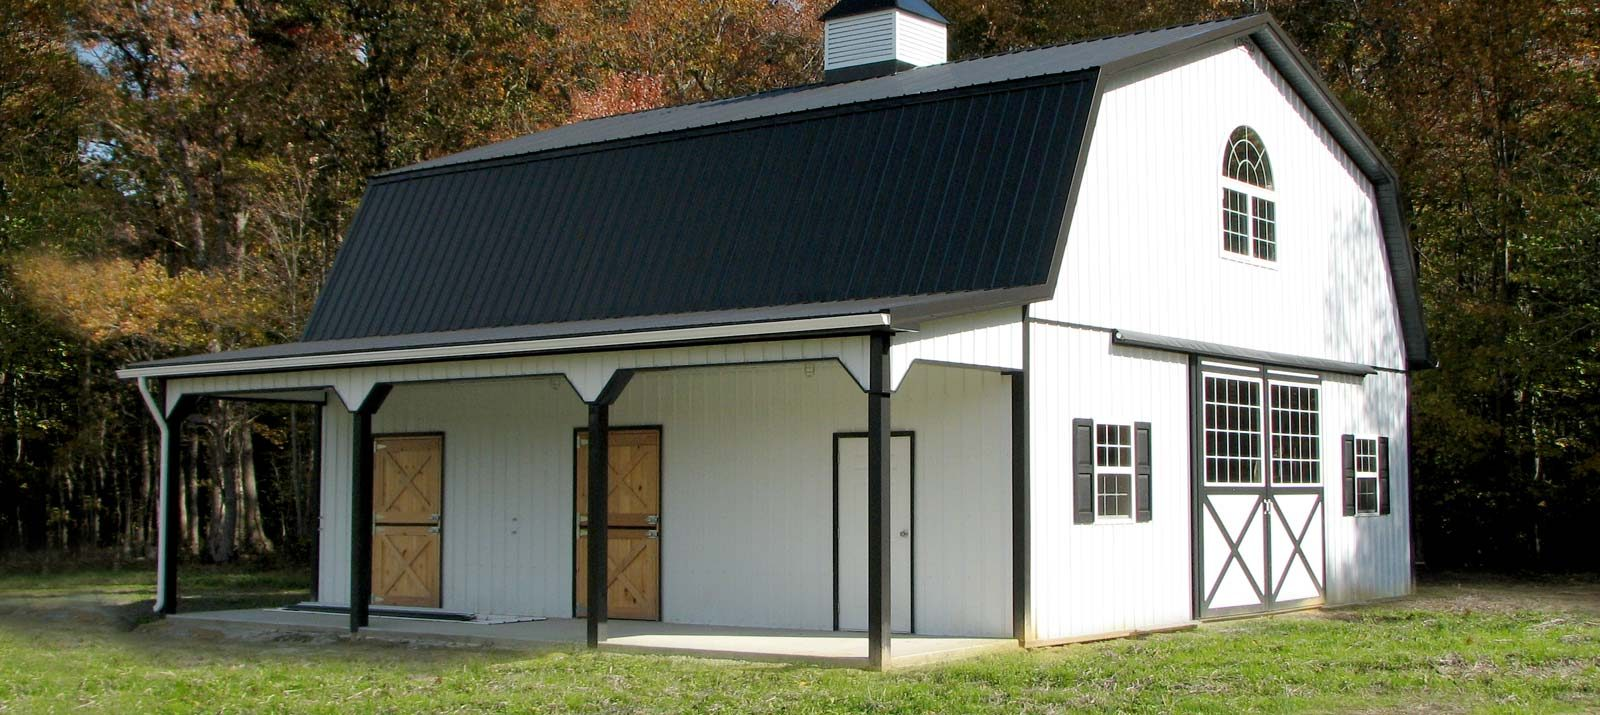 cb-slider-ag-barns-5